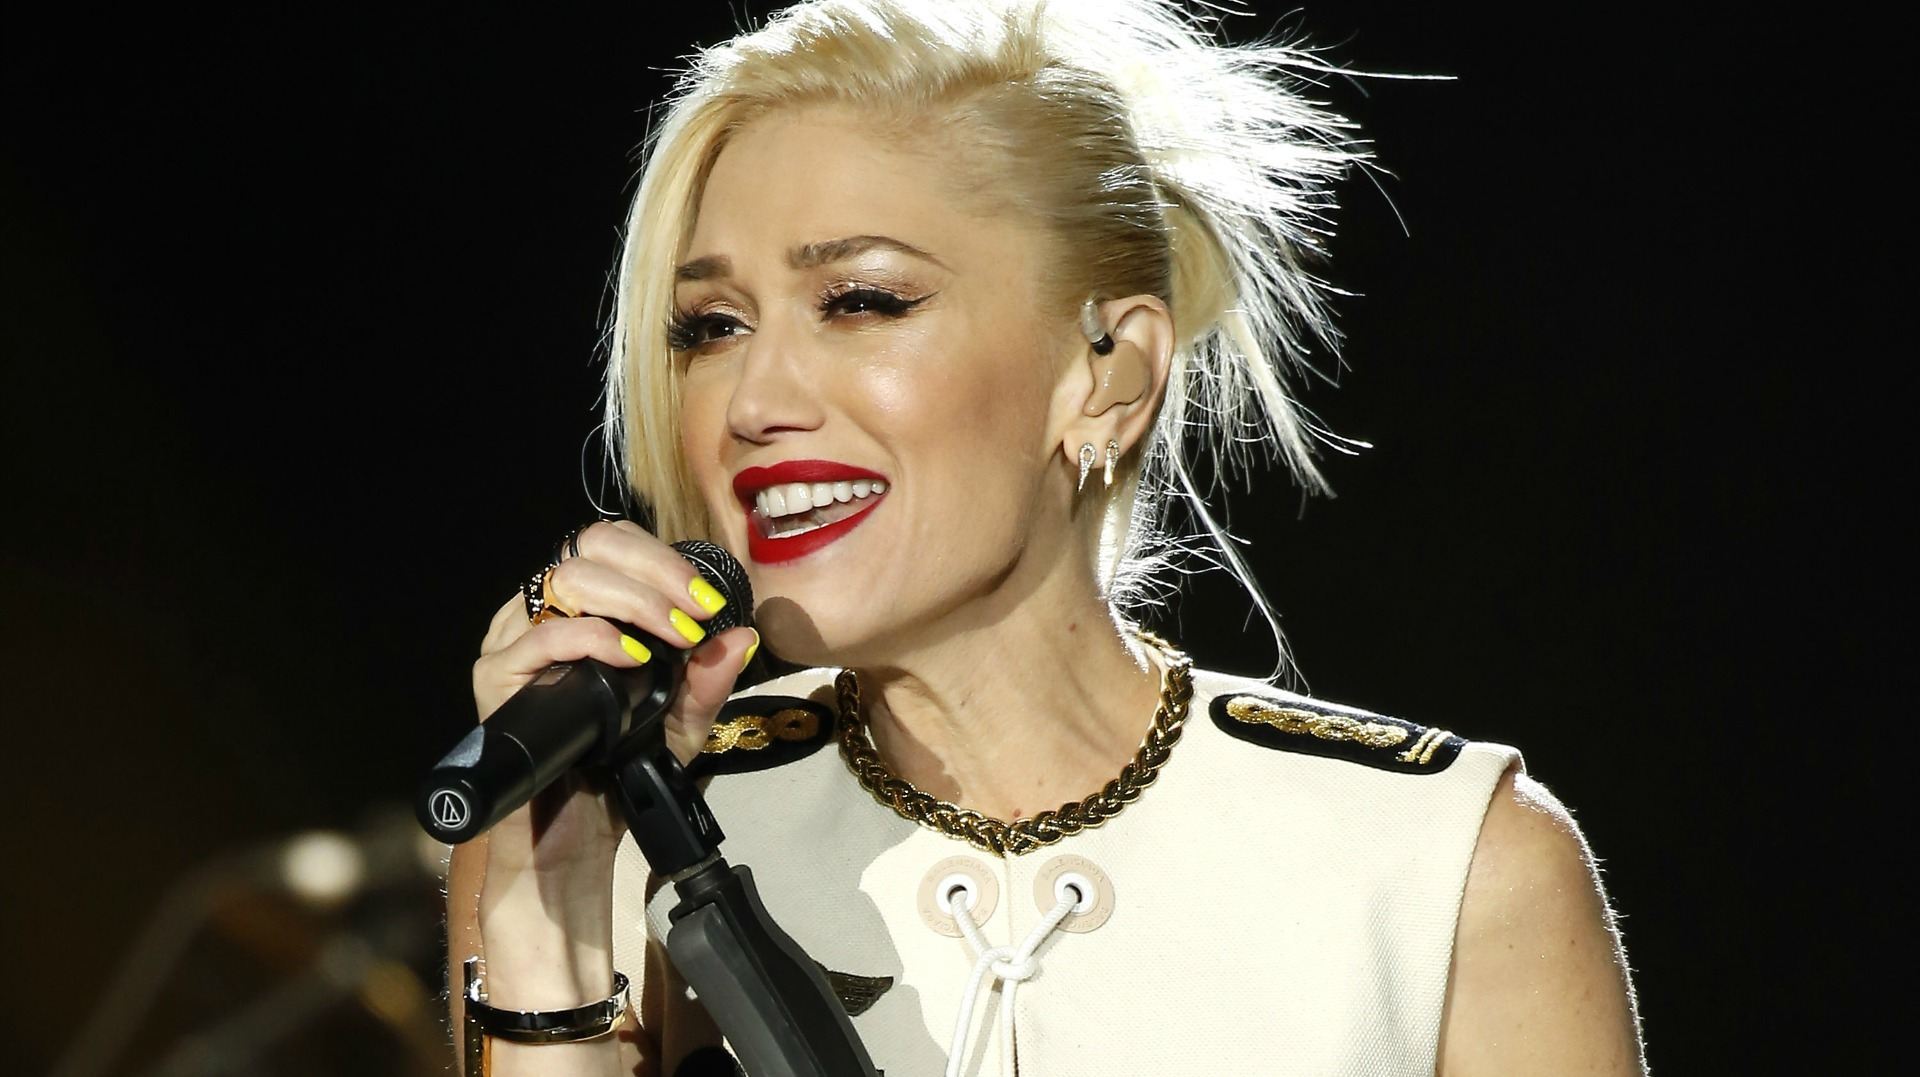 Gwen Stefani Wallpapers Images Photos Pictures Backgrounds гвен стефани